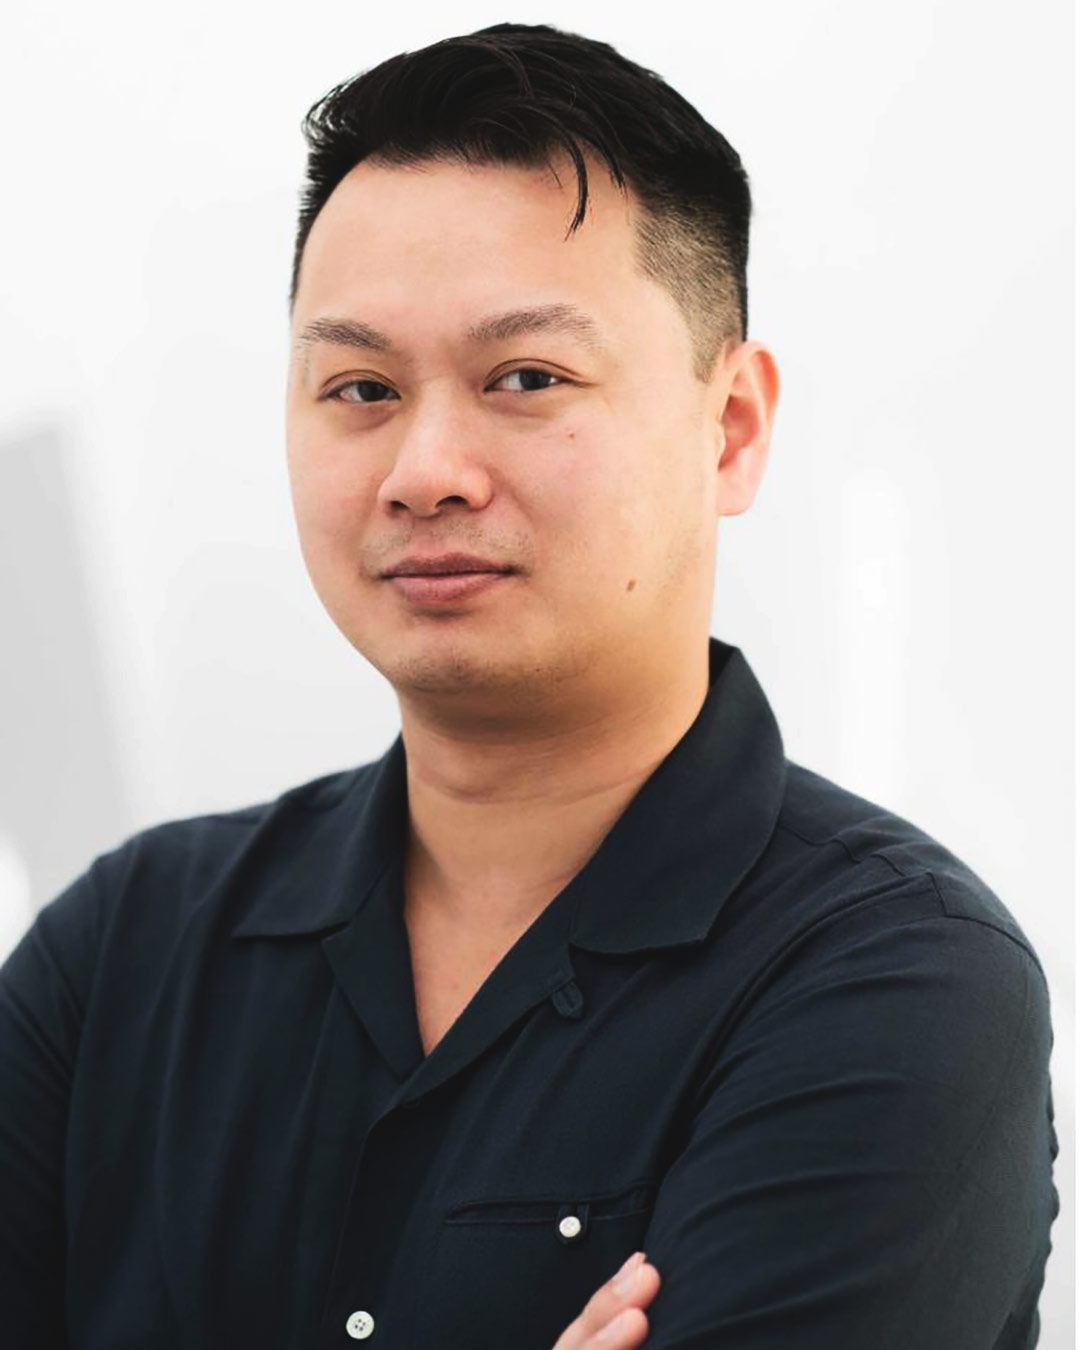 Portrait of Derrick Chang